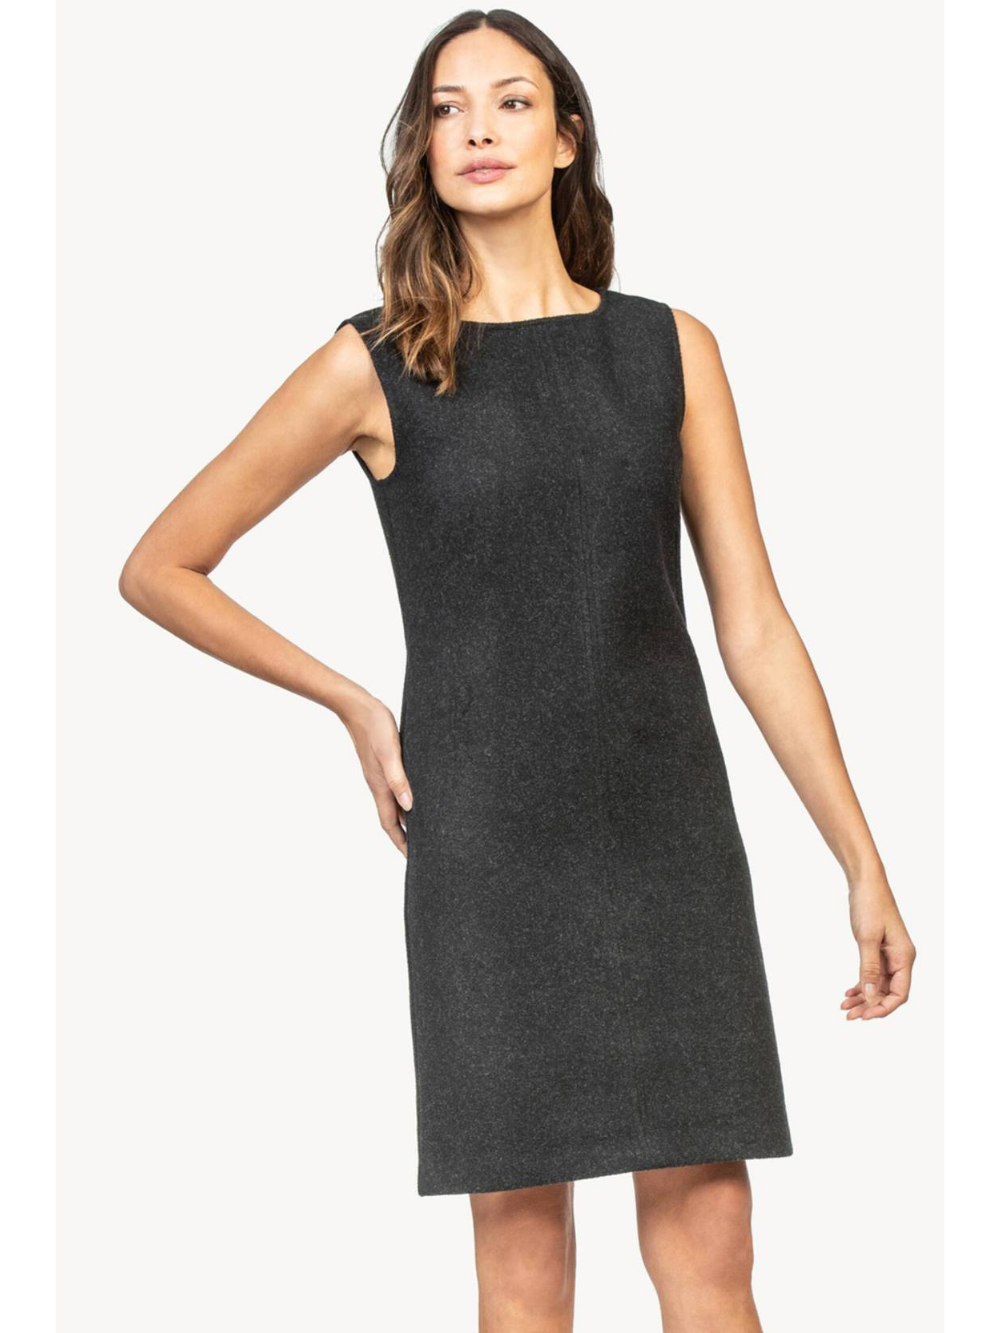 Felt Sheath Dress